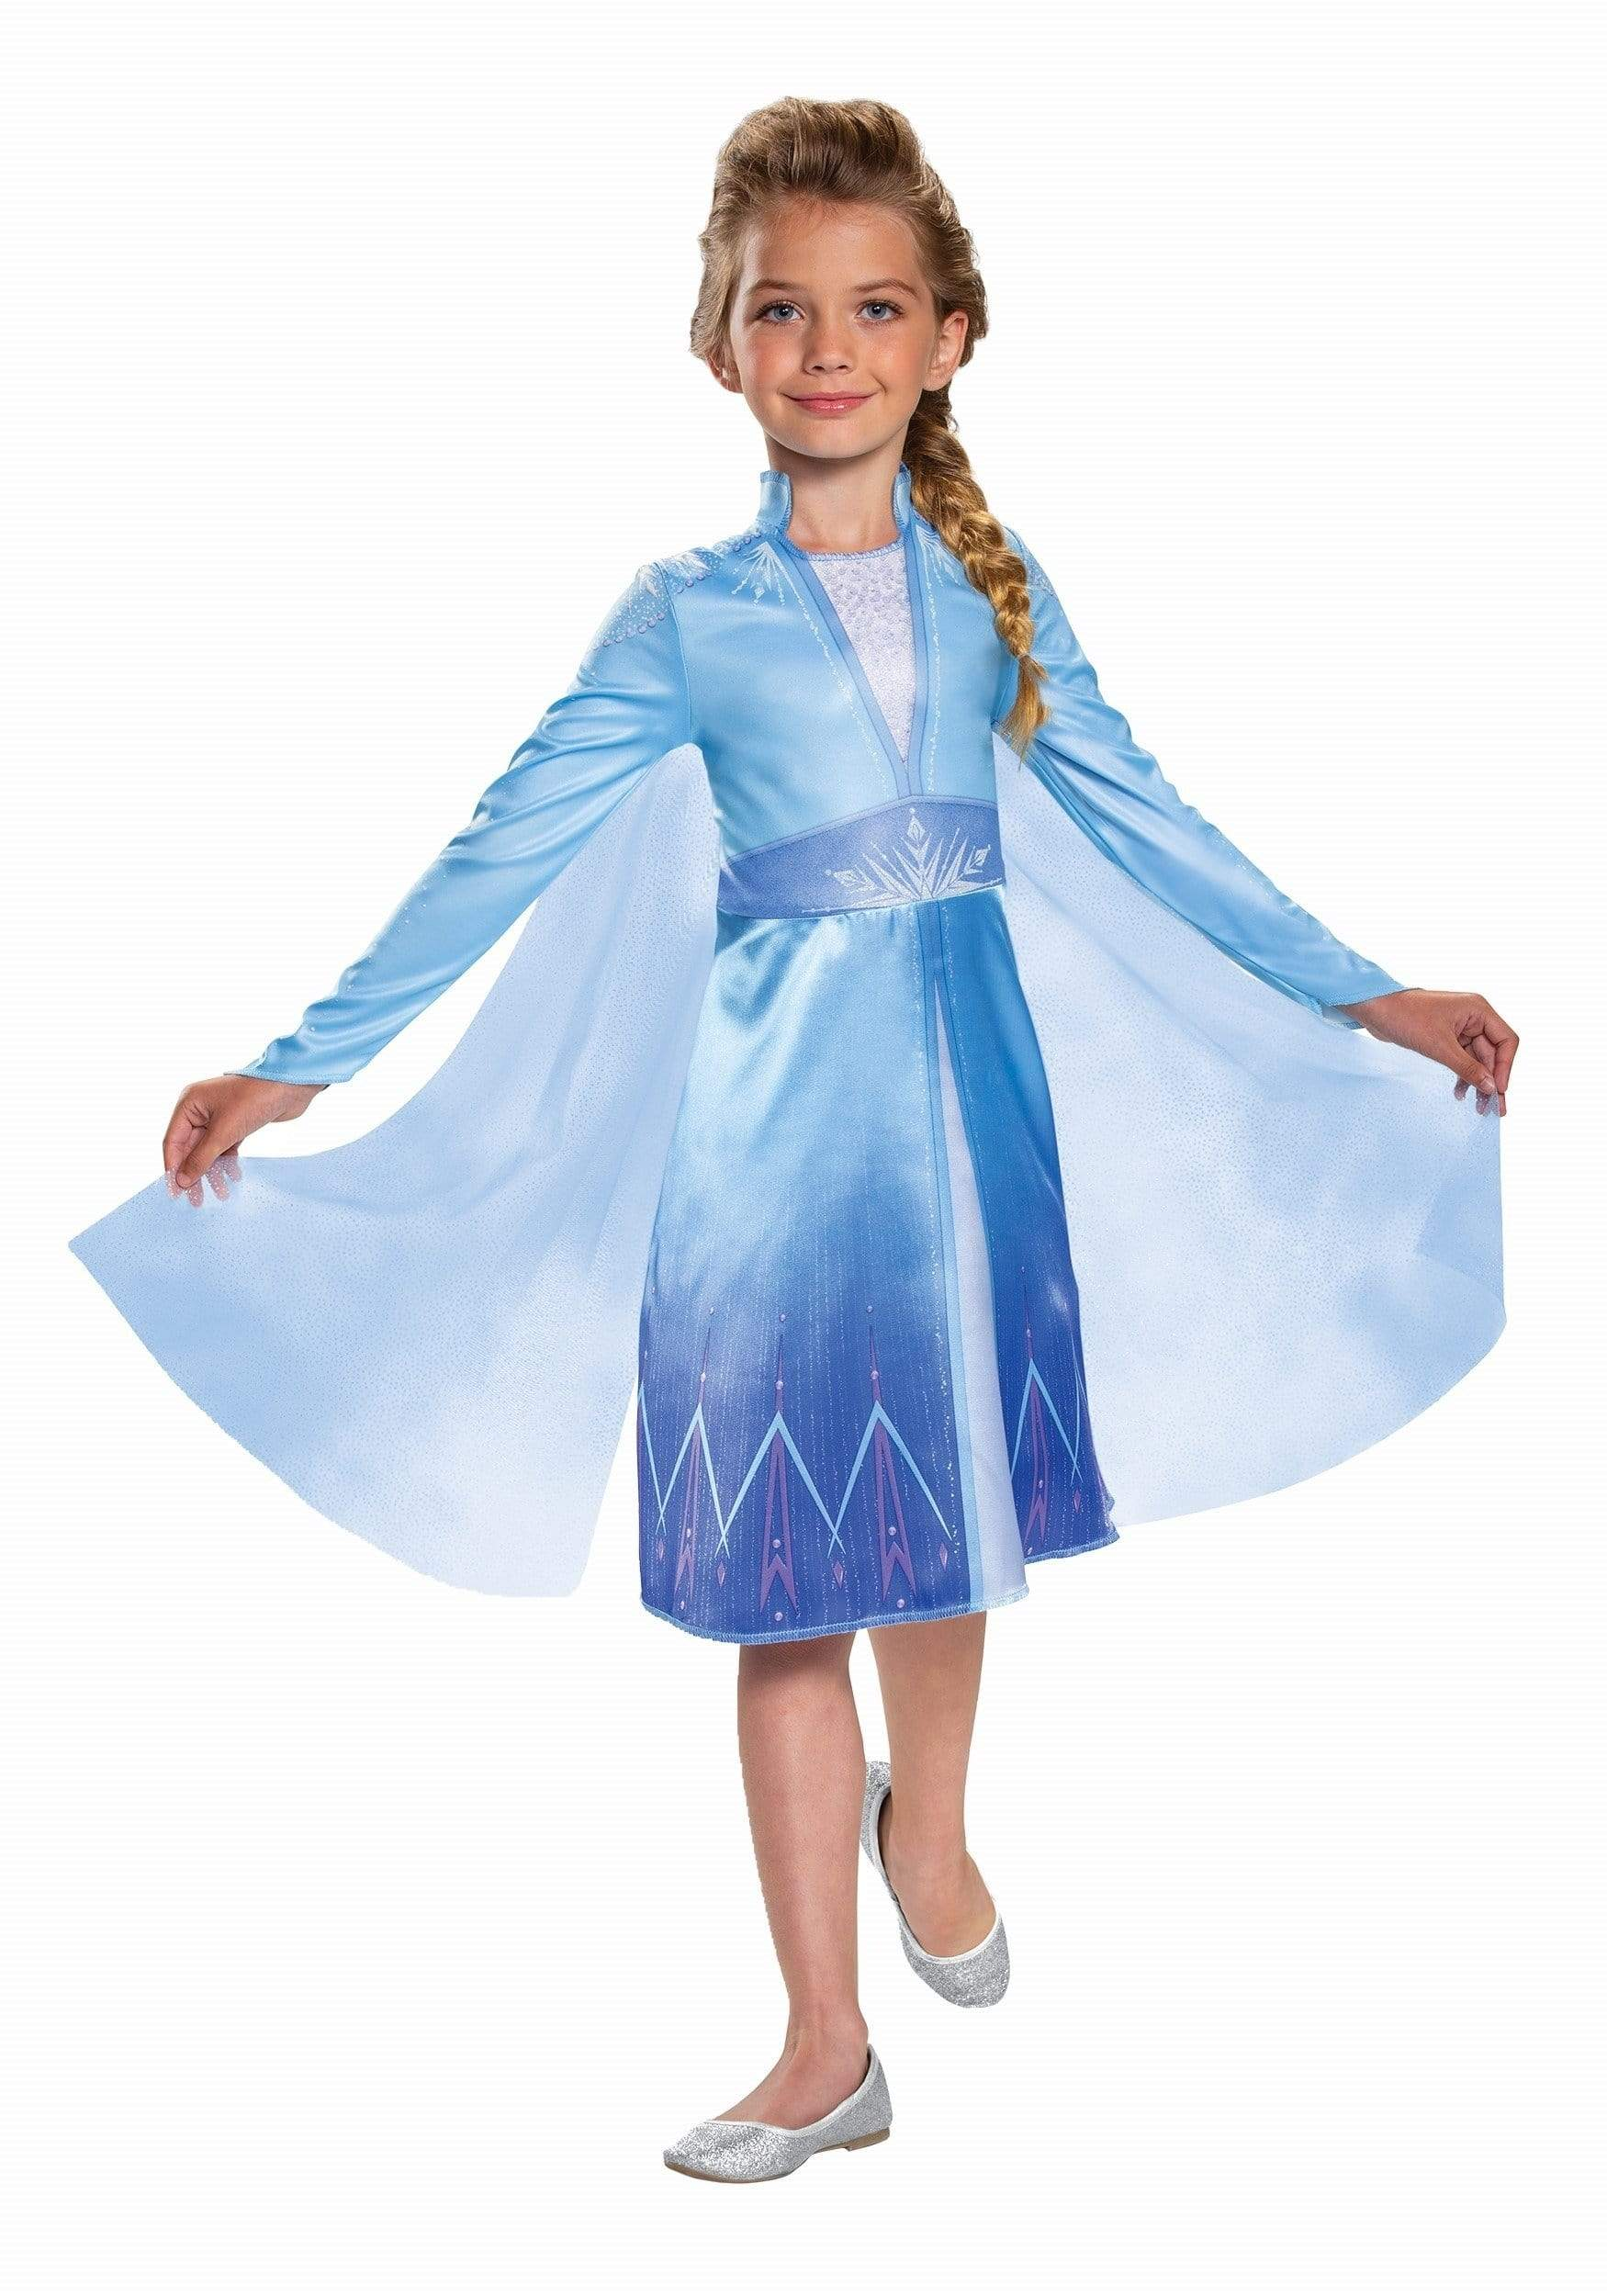 Robe Princesse Reine des Neiges 2